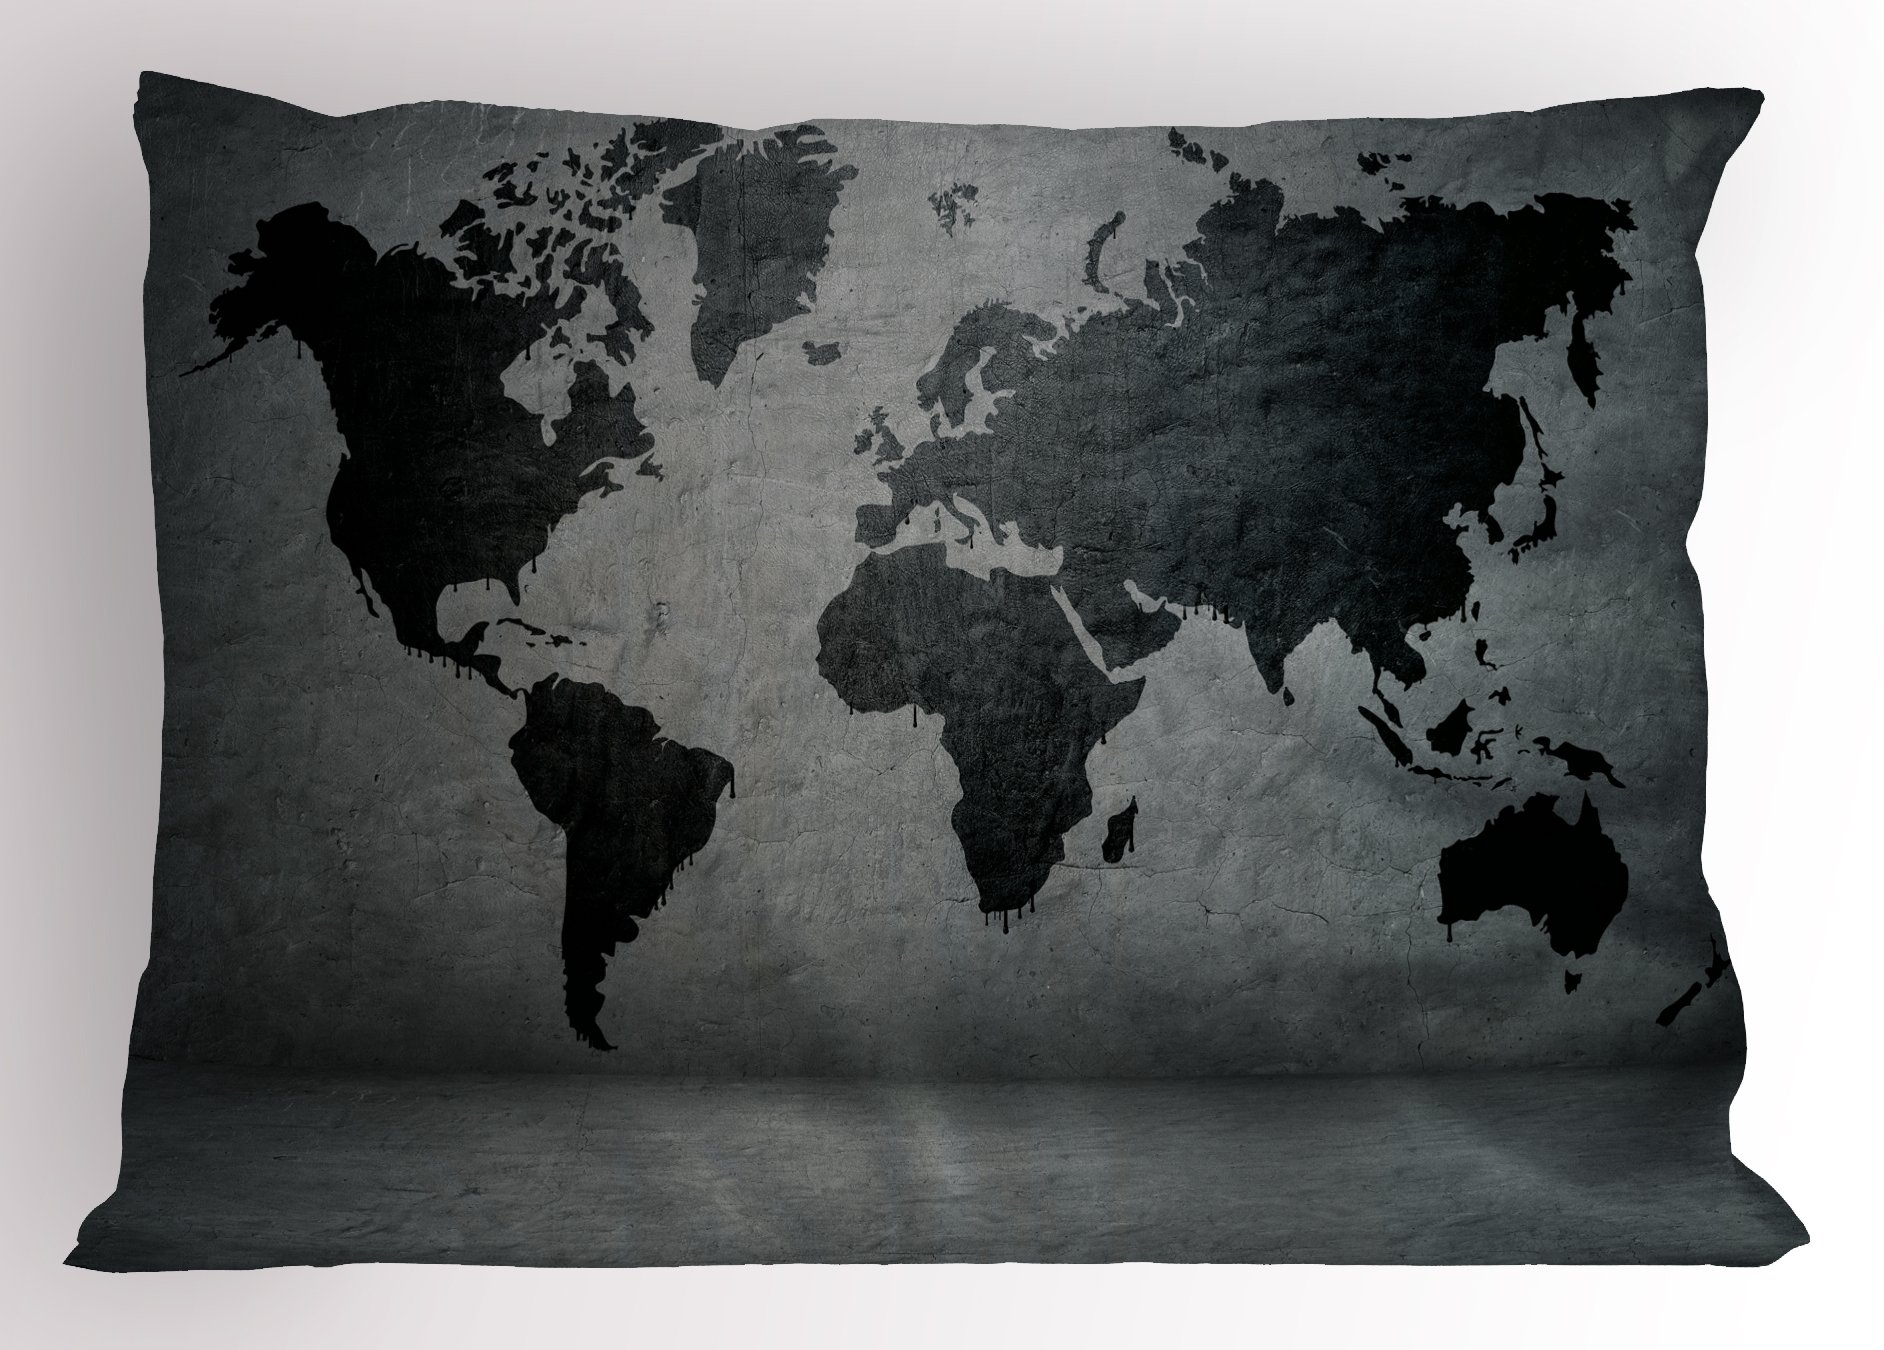 Ambesonne Dark Grey Pillow Sham, Black Colored World Map on Concrete Wall Image Urban Structure Grungy Rough Look, Decorative Standard Queen Size Printed Pillowcase, 30 X 20 inches, Grey Black